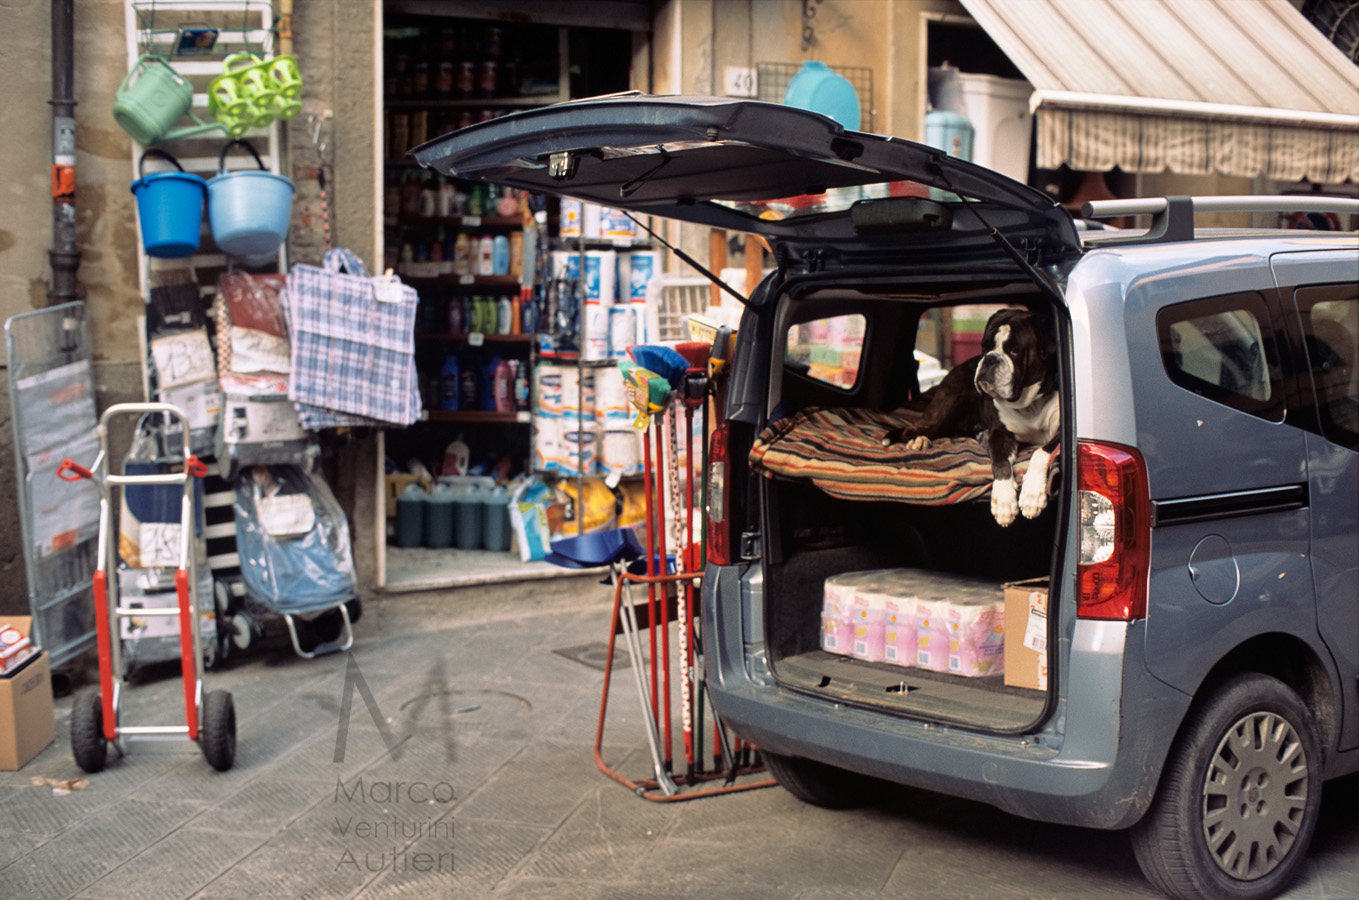 Pisa, Italy - March 29, 2013: a small van is parked in front of a traditional corner shop for home accessories; a good looking San Bernardo dog guards the property. This happens in the historic centre of Pisa, near the traditional market of Piazza delle Vettovaglie. Shallow depth of focus, on the dog. Scan from Provia 100F, slightly toned.